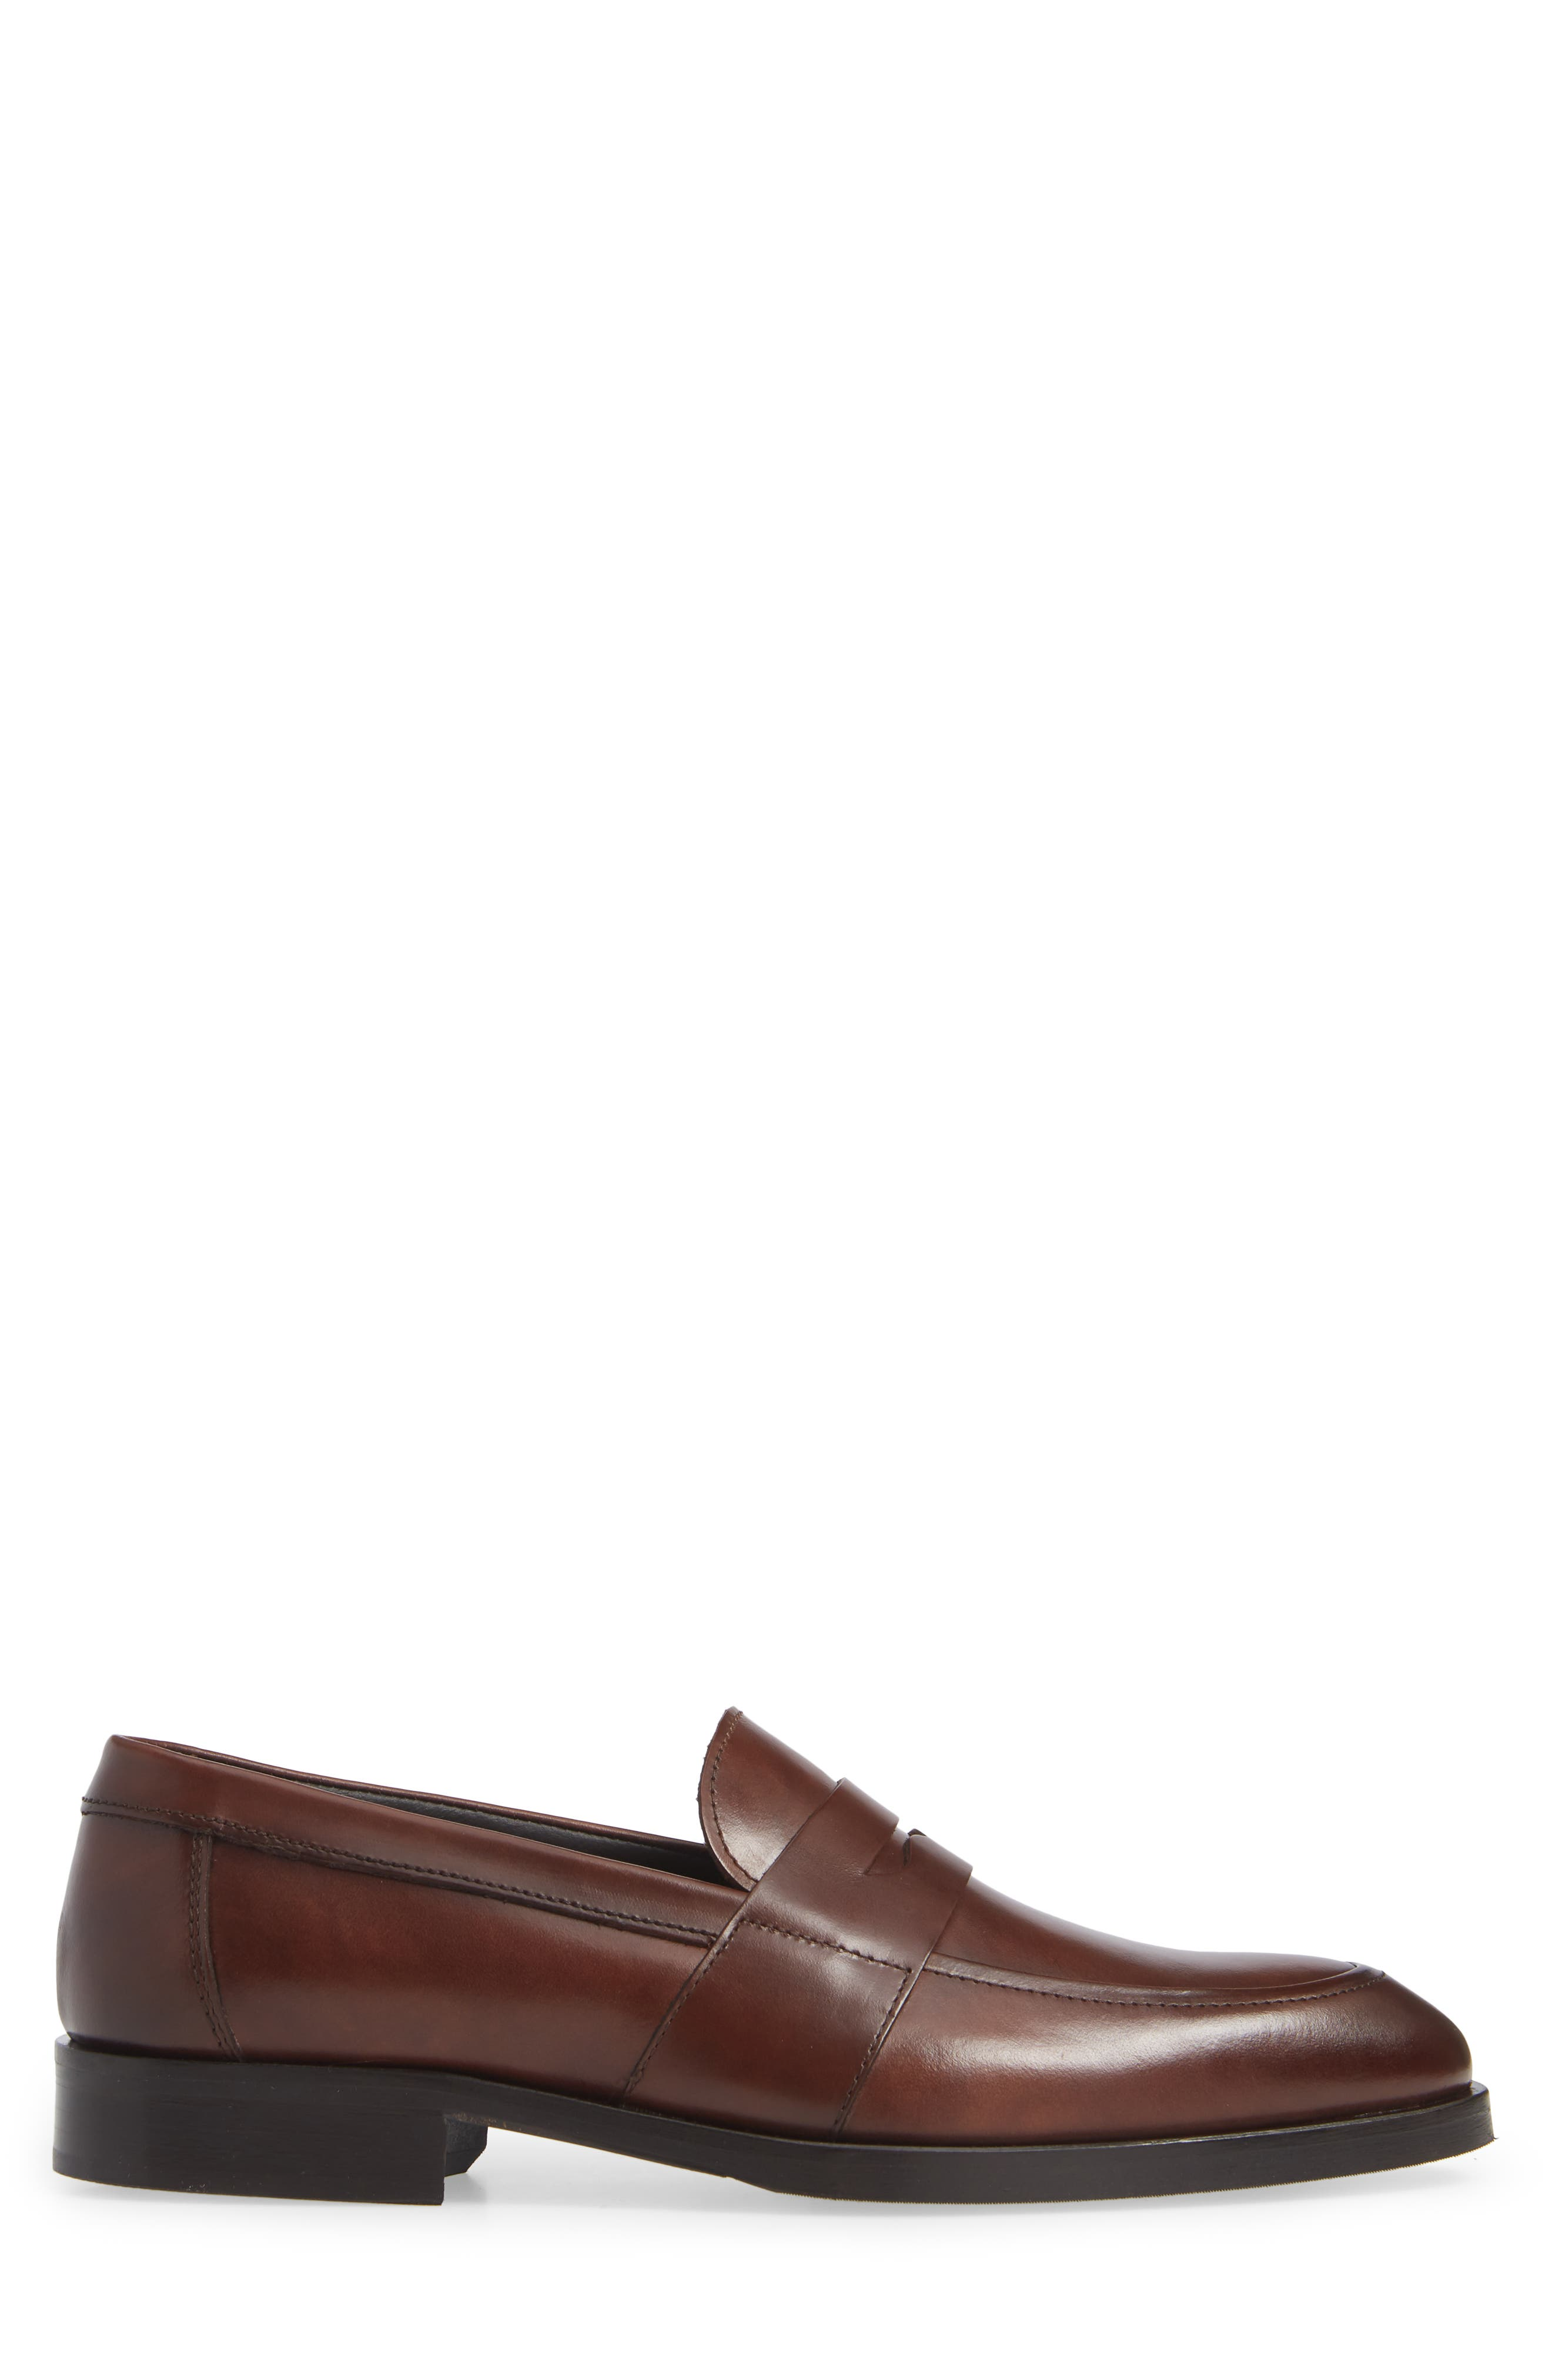 Devries Penny Loafer,                             Alternate thumbnail 3, color,                             VITELLO BRUCIATO LEATHER